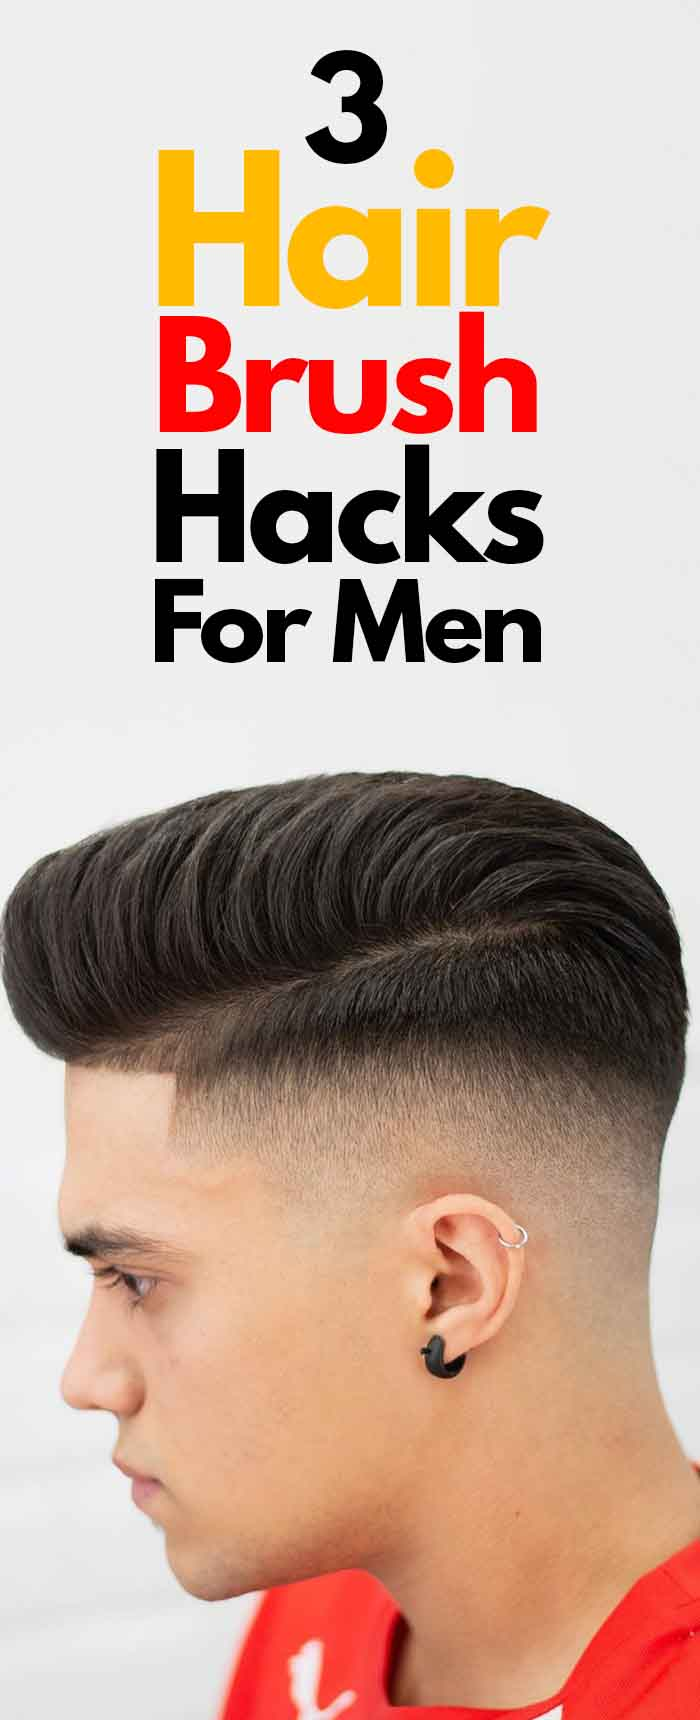 Hair Brush Hacks For Men 2019